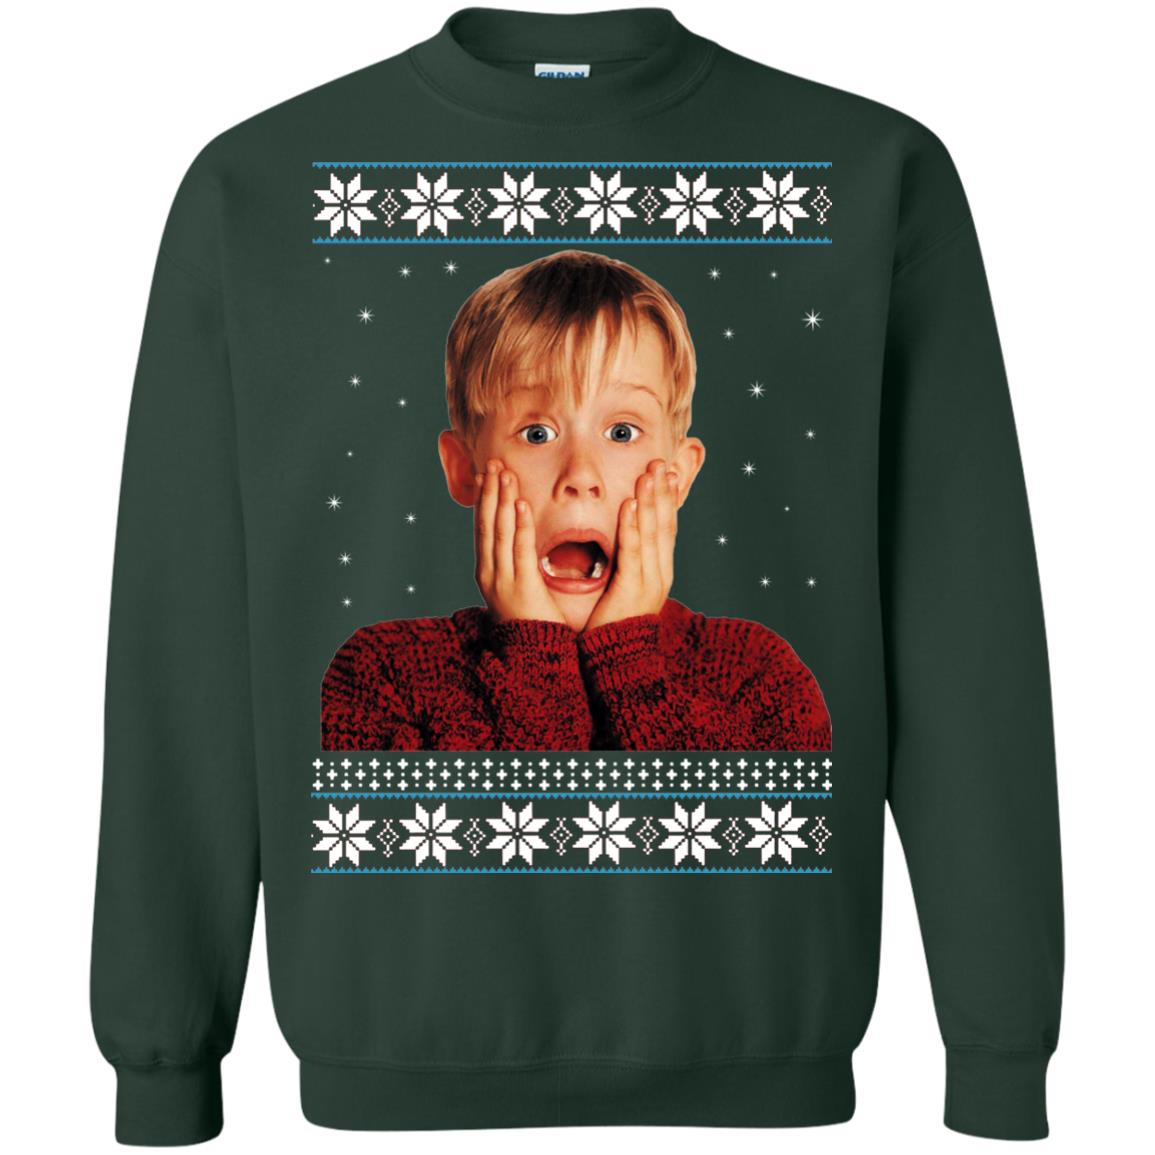 image 6279 - Home Alone: Kevin McCallister Sweatshirt, Hoodie, Long Sleeve